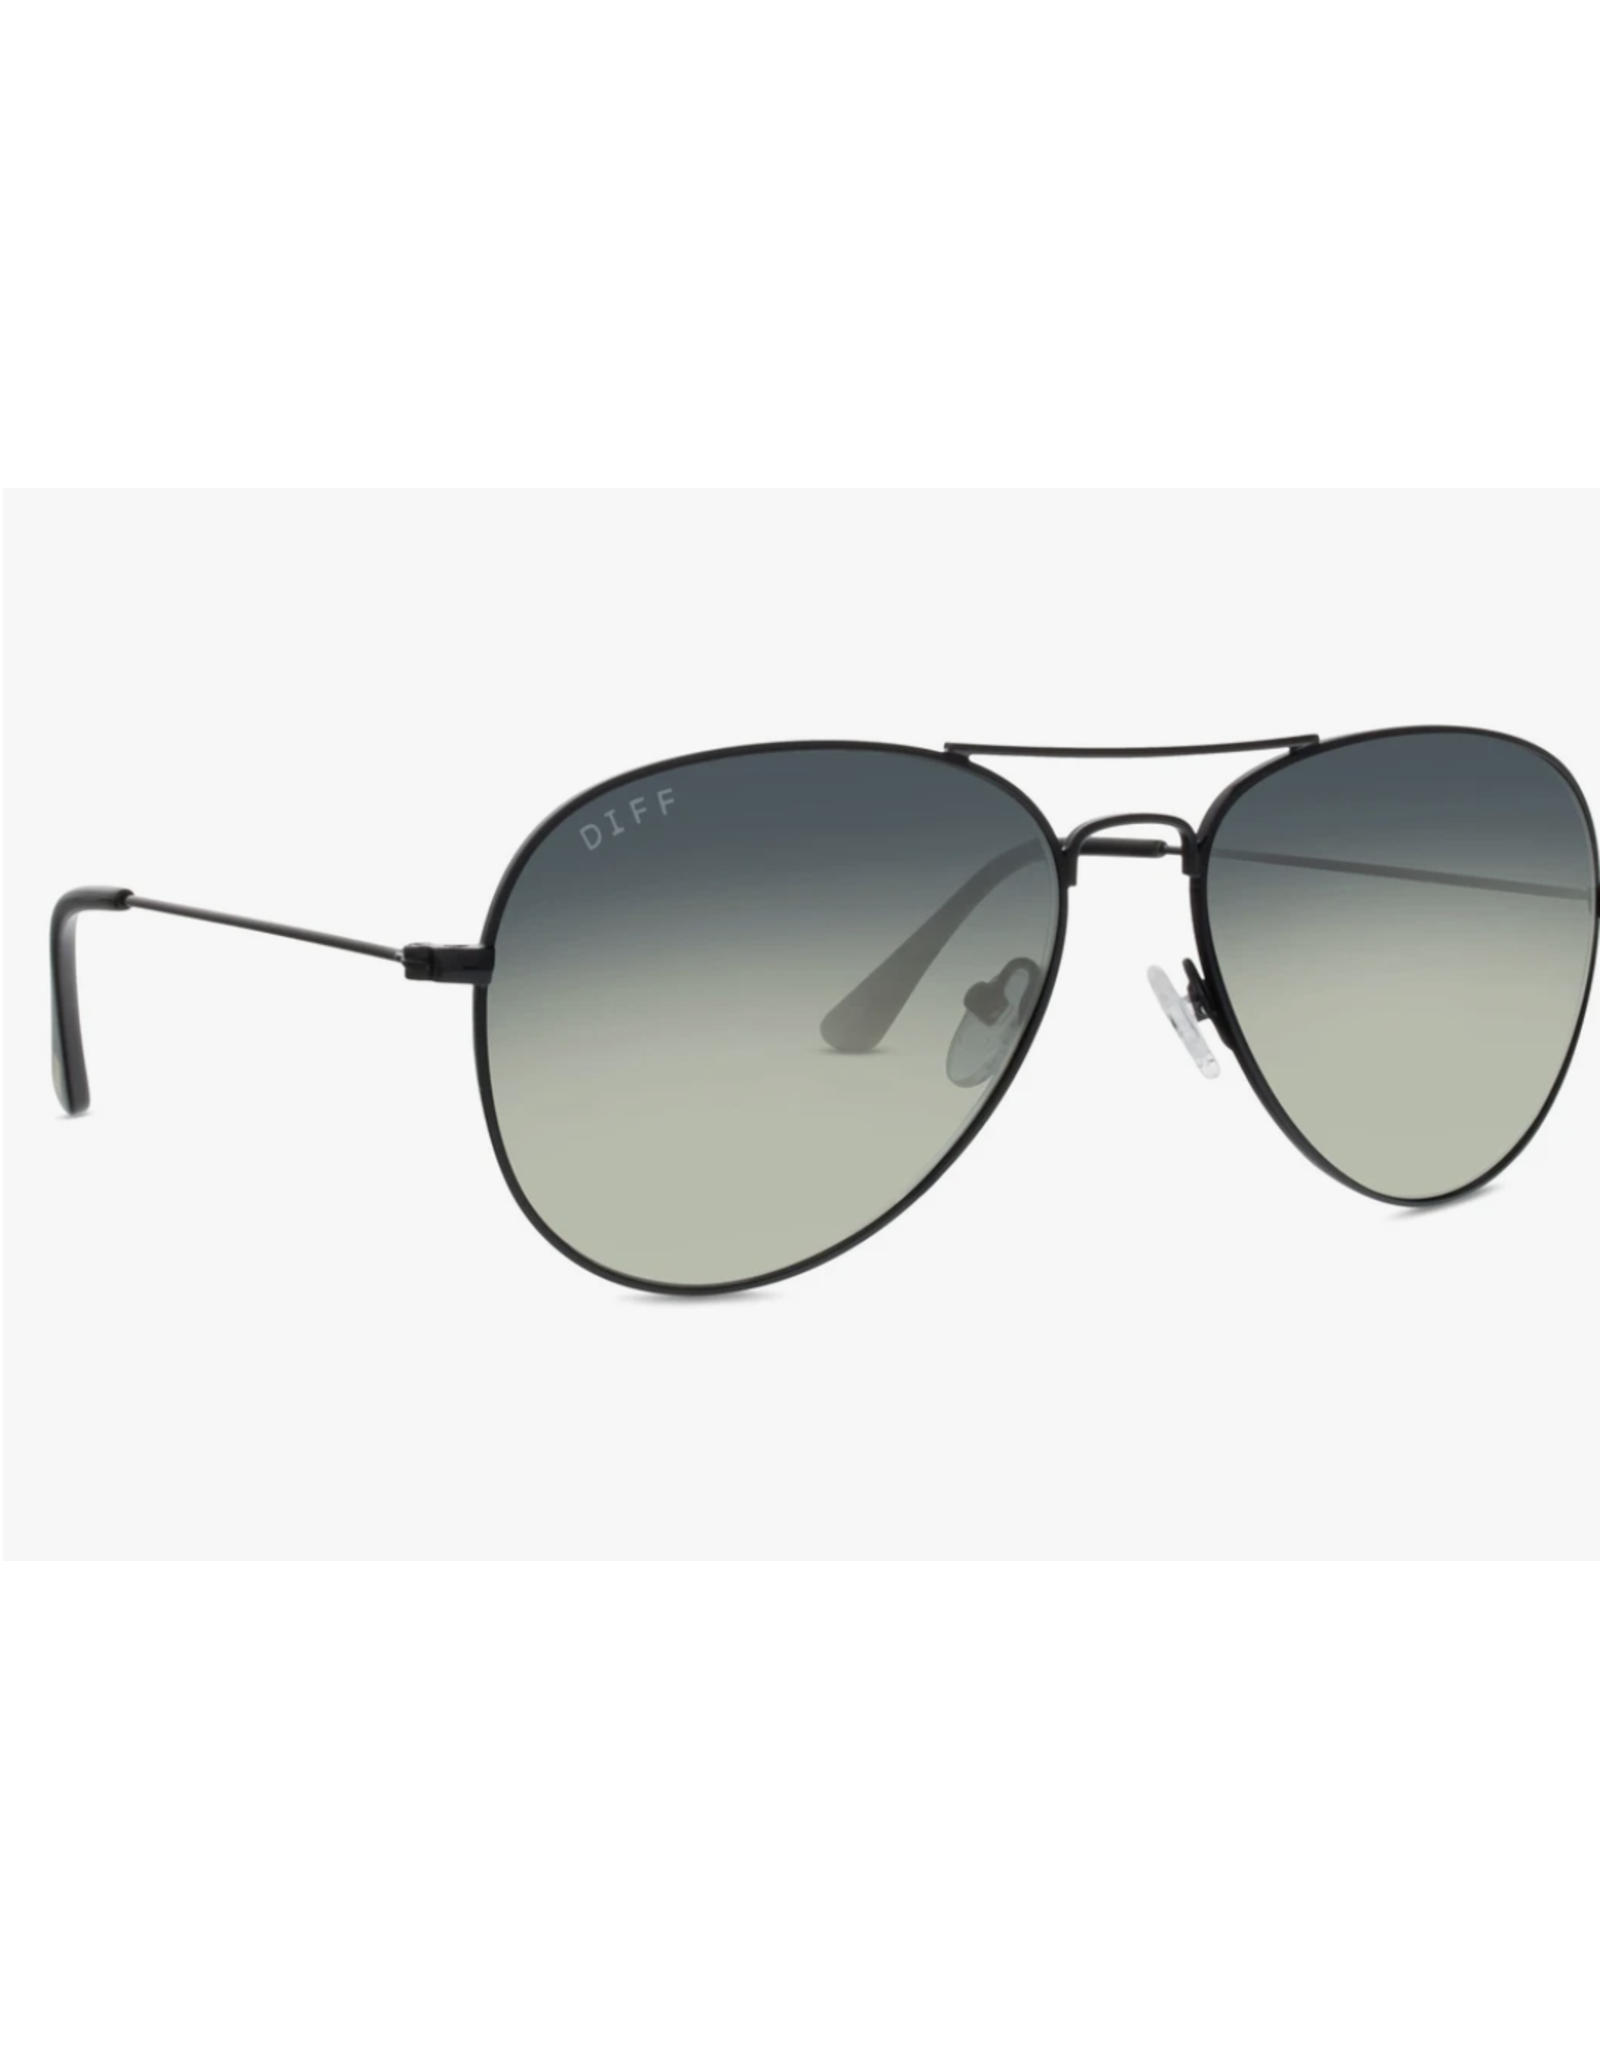 Diff Eyewear Cruz Sunglasses